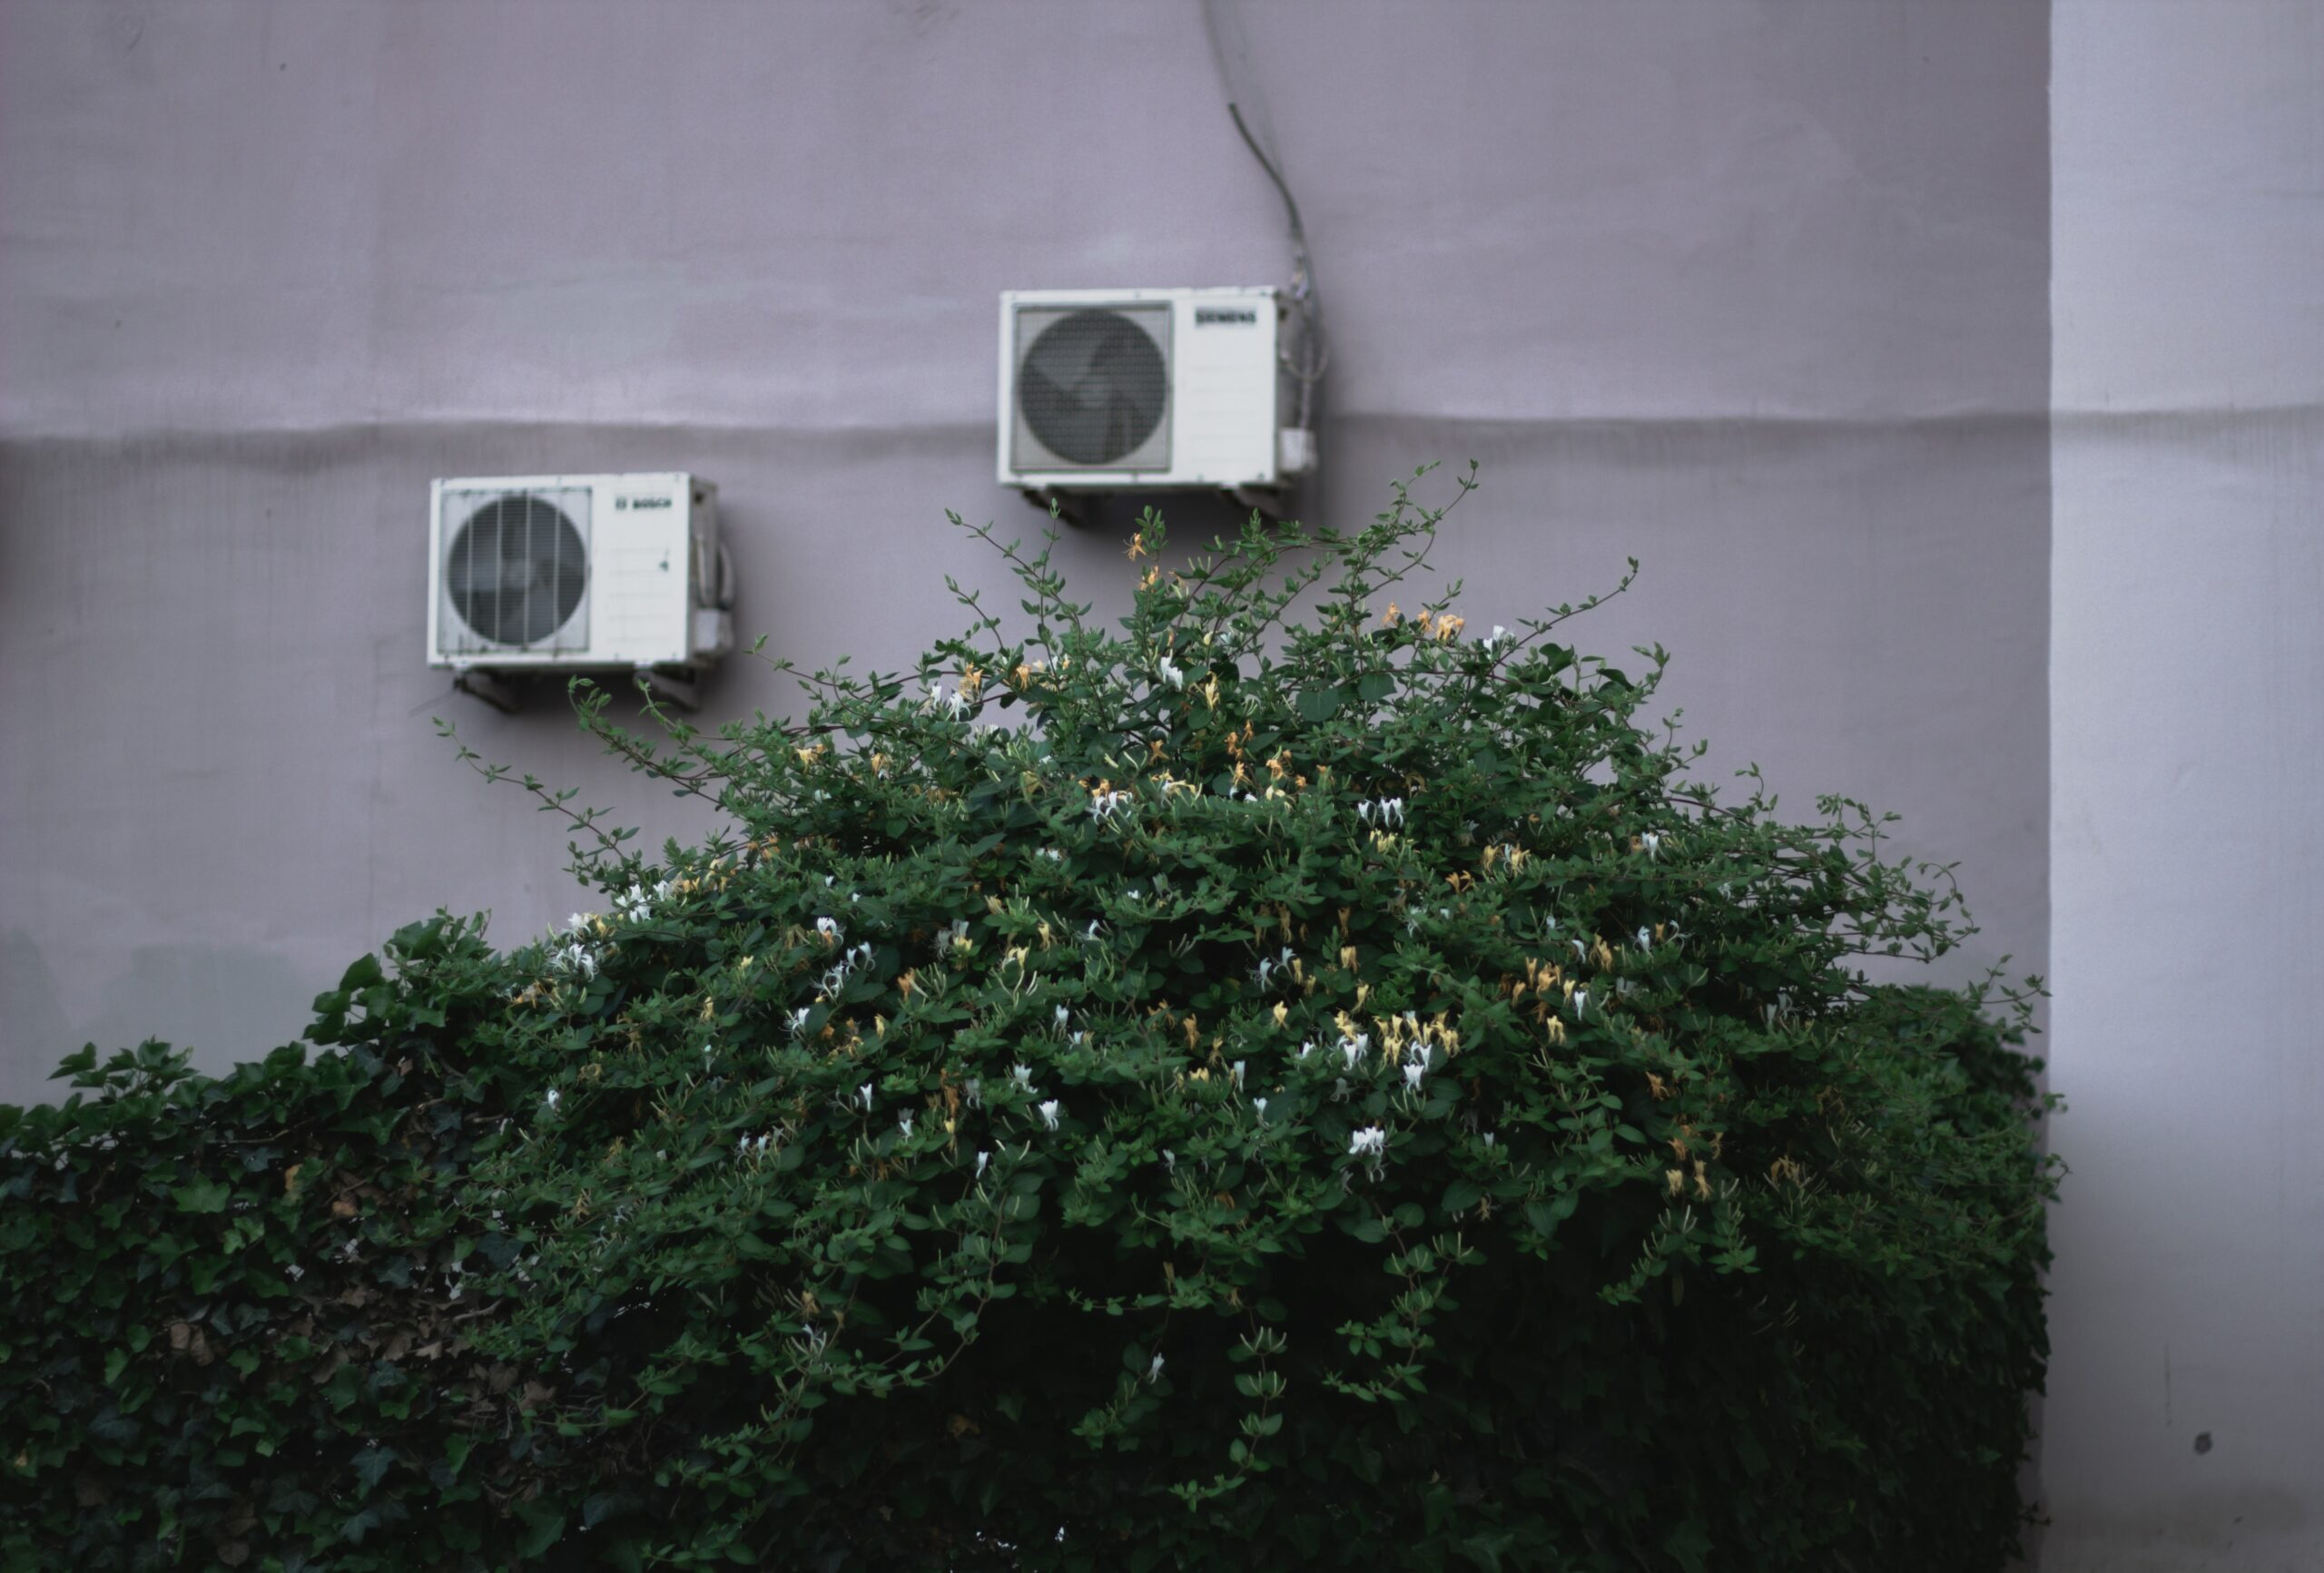 2 air conditionning units on a wall